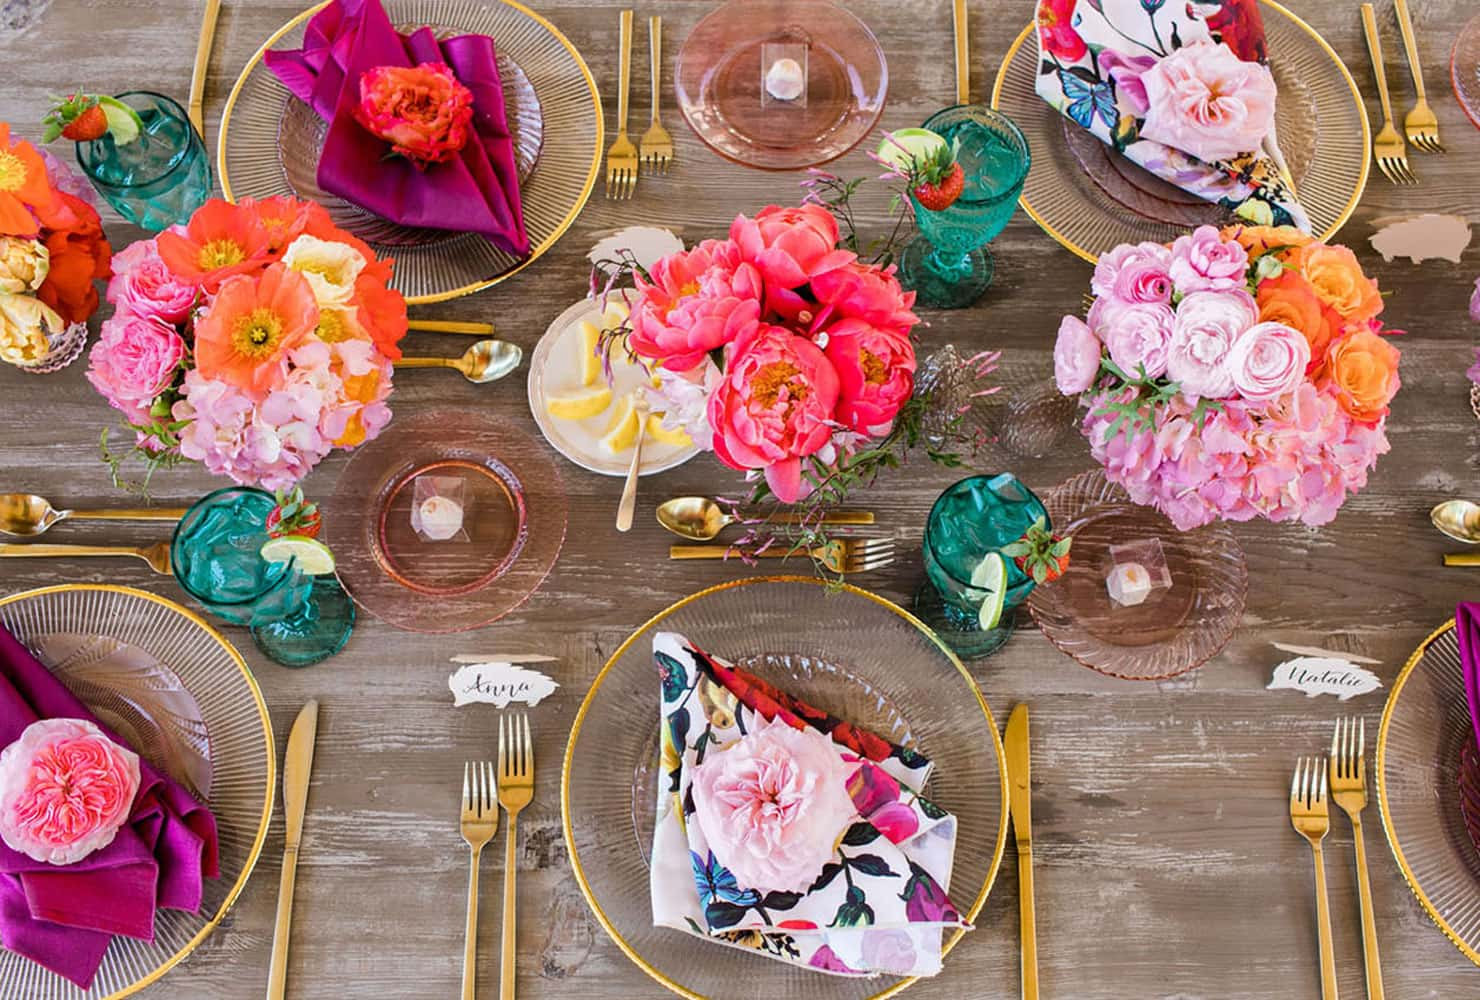 60 Bridal Shower Themes To Help You Celebrate In Style